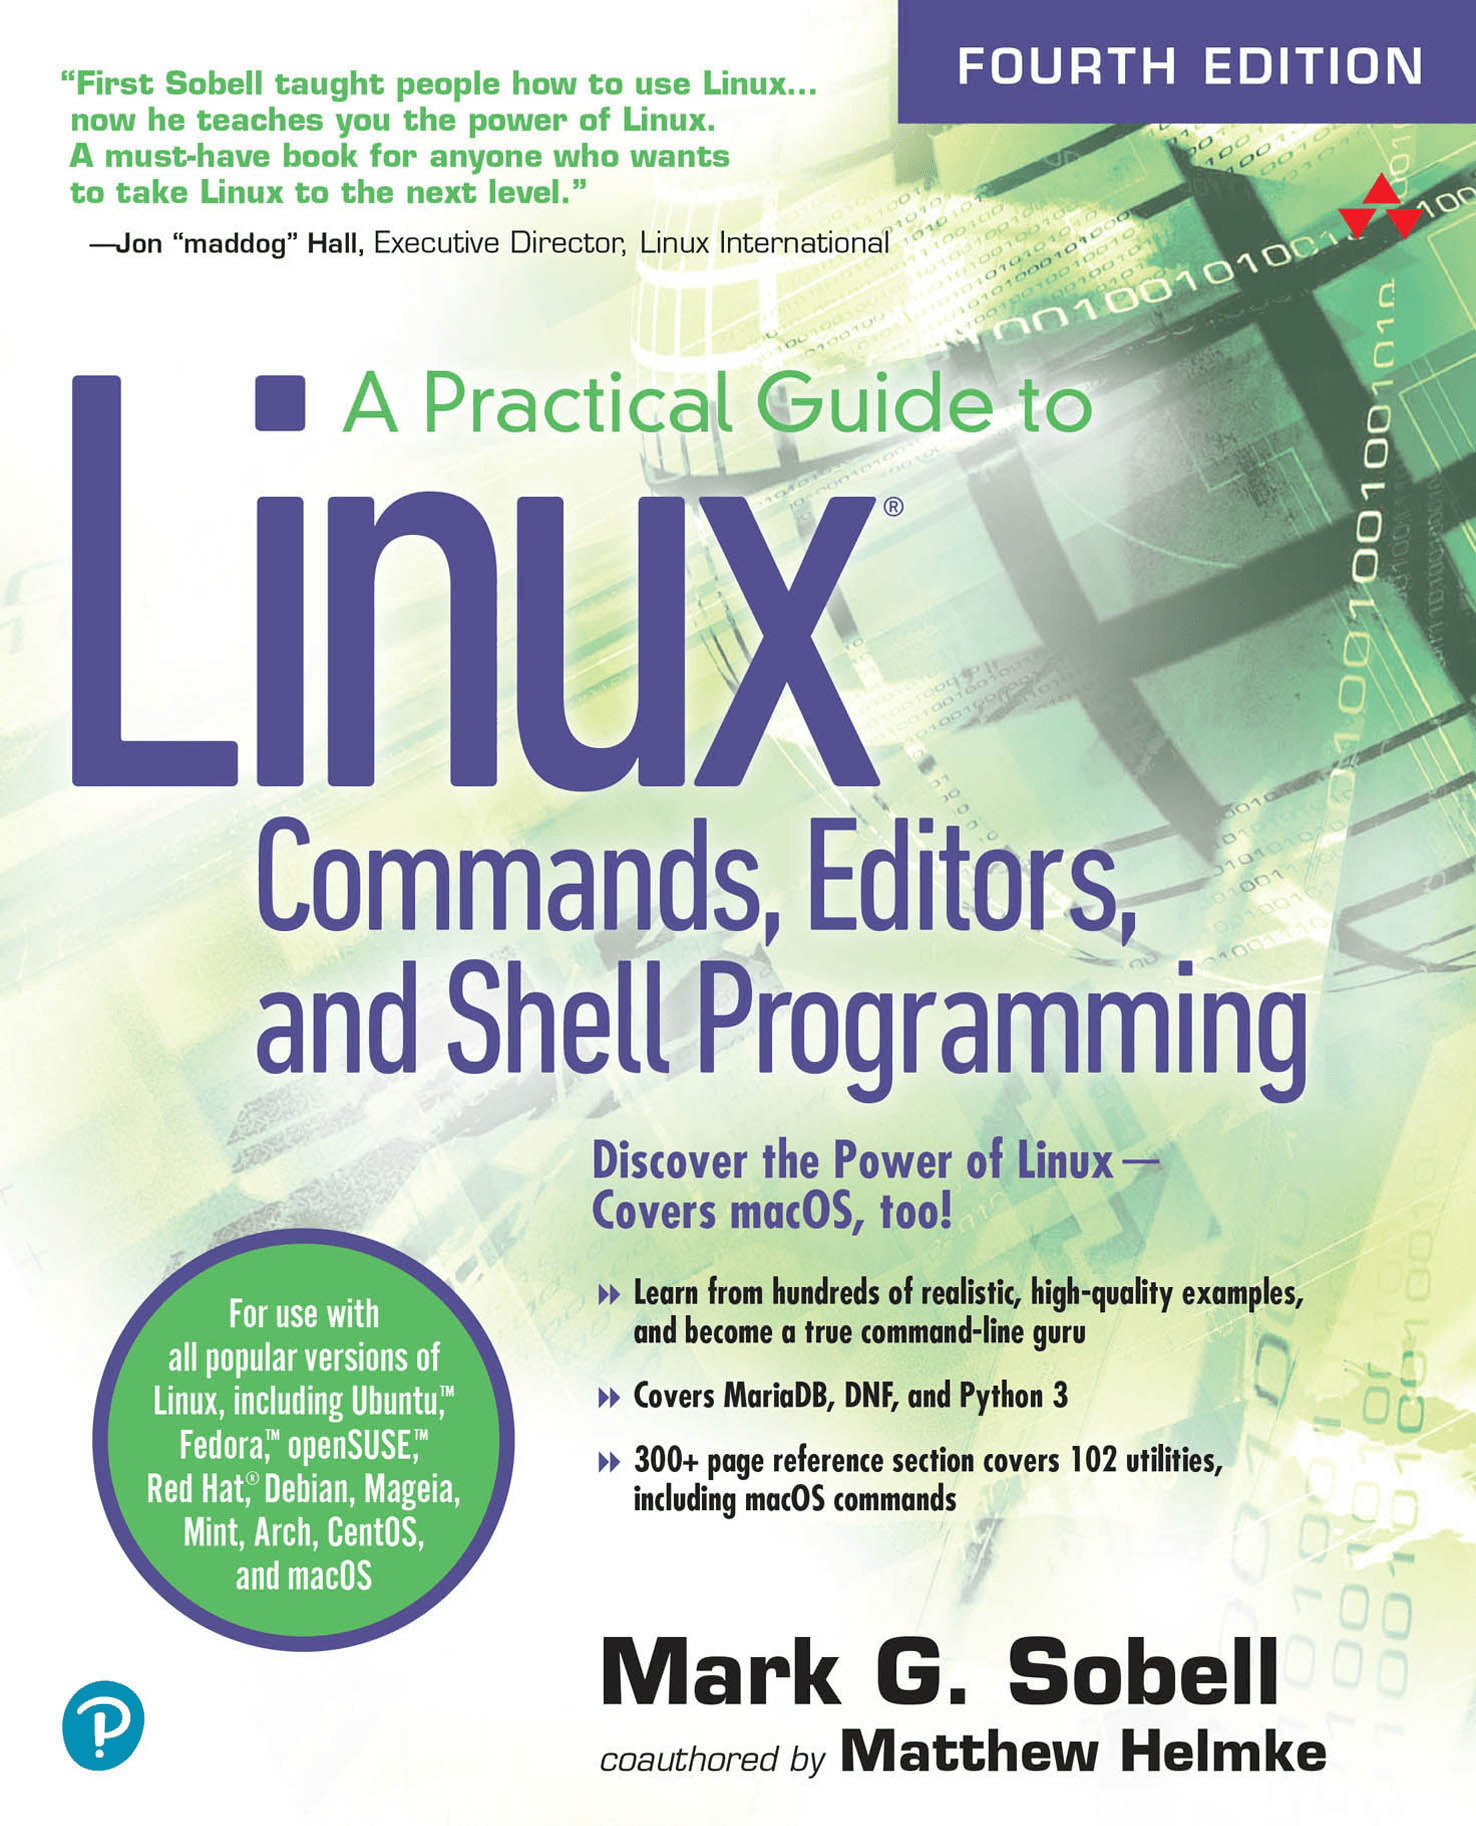 A Practical Guide To Linux Commands Editors And Shell Programming 4th Edition Pdf Https Linux Relational Database Management System Programming Tools